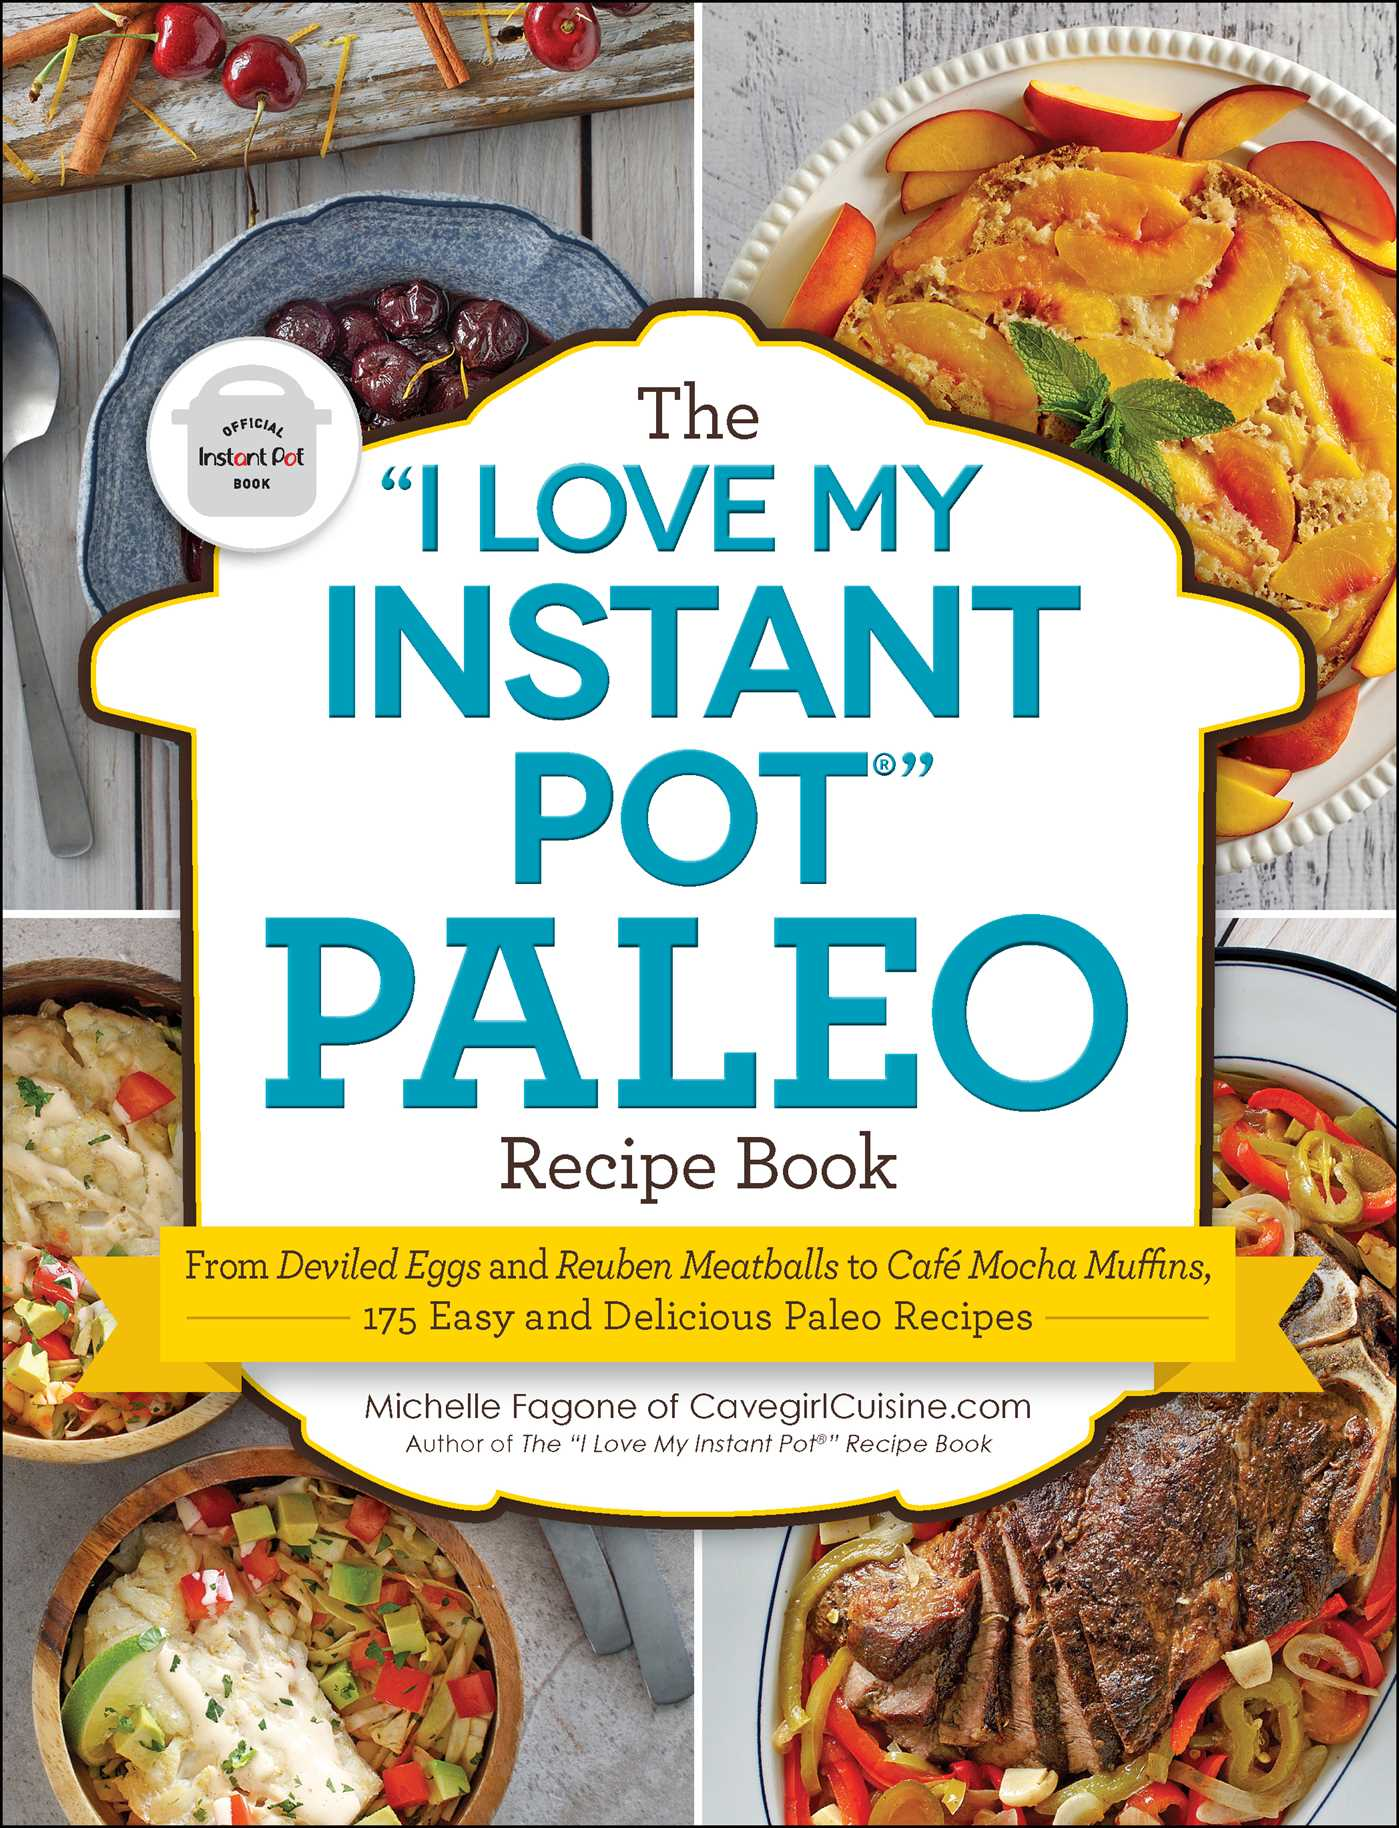 The i love my instant pot paleo recipe book book by michelle the i love my instant pot paleo recipe book 9781507205747 hr forumfinder Image collections